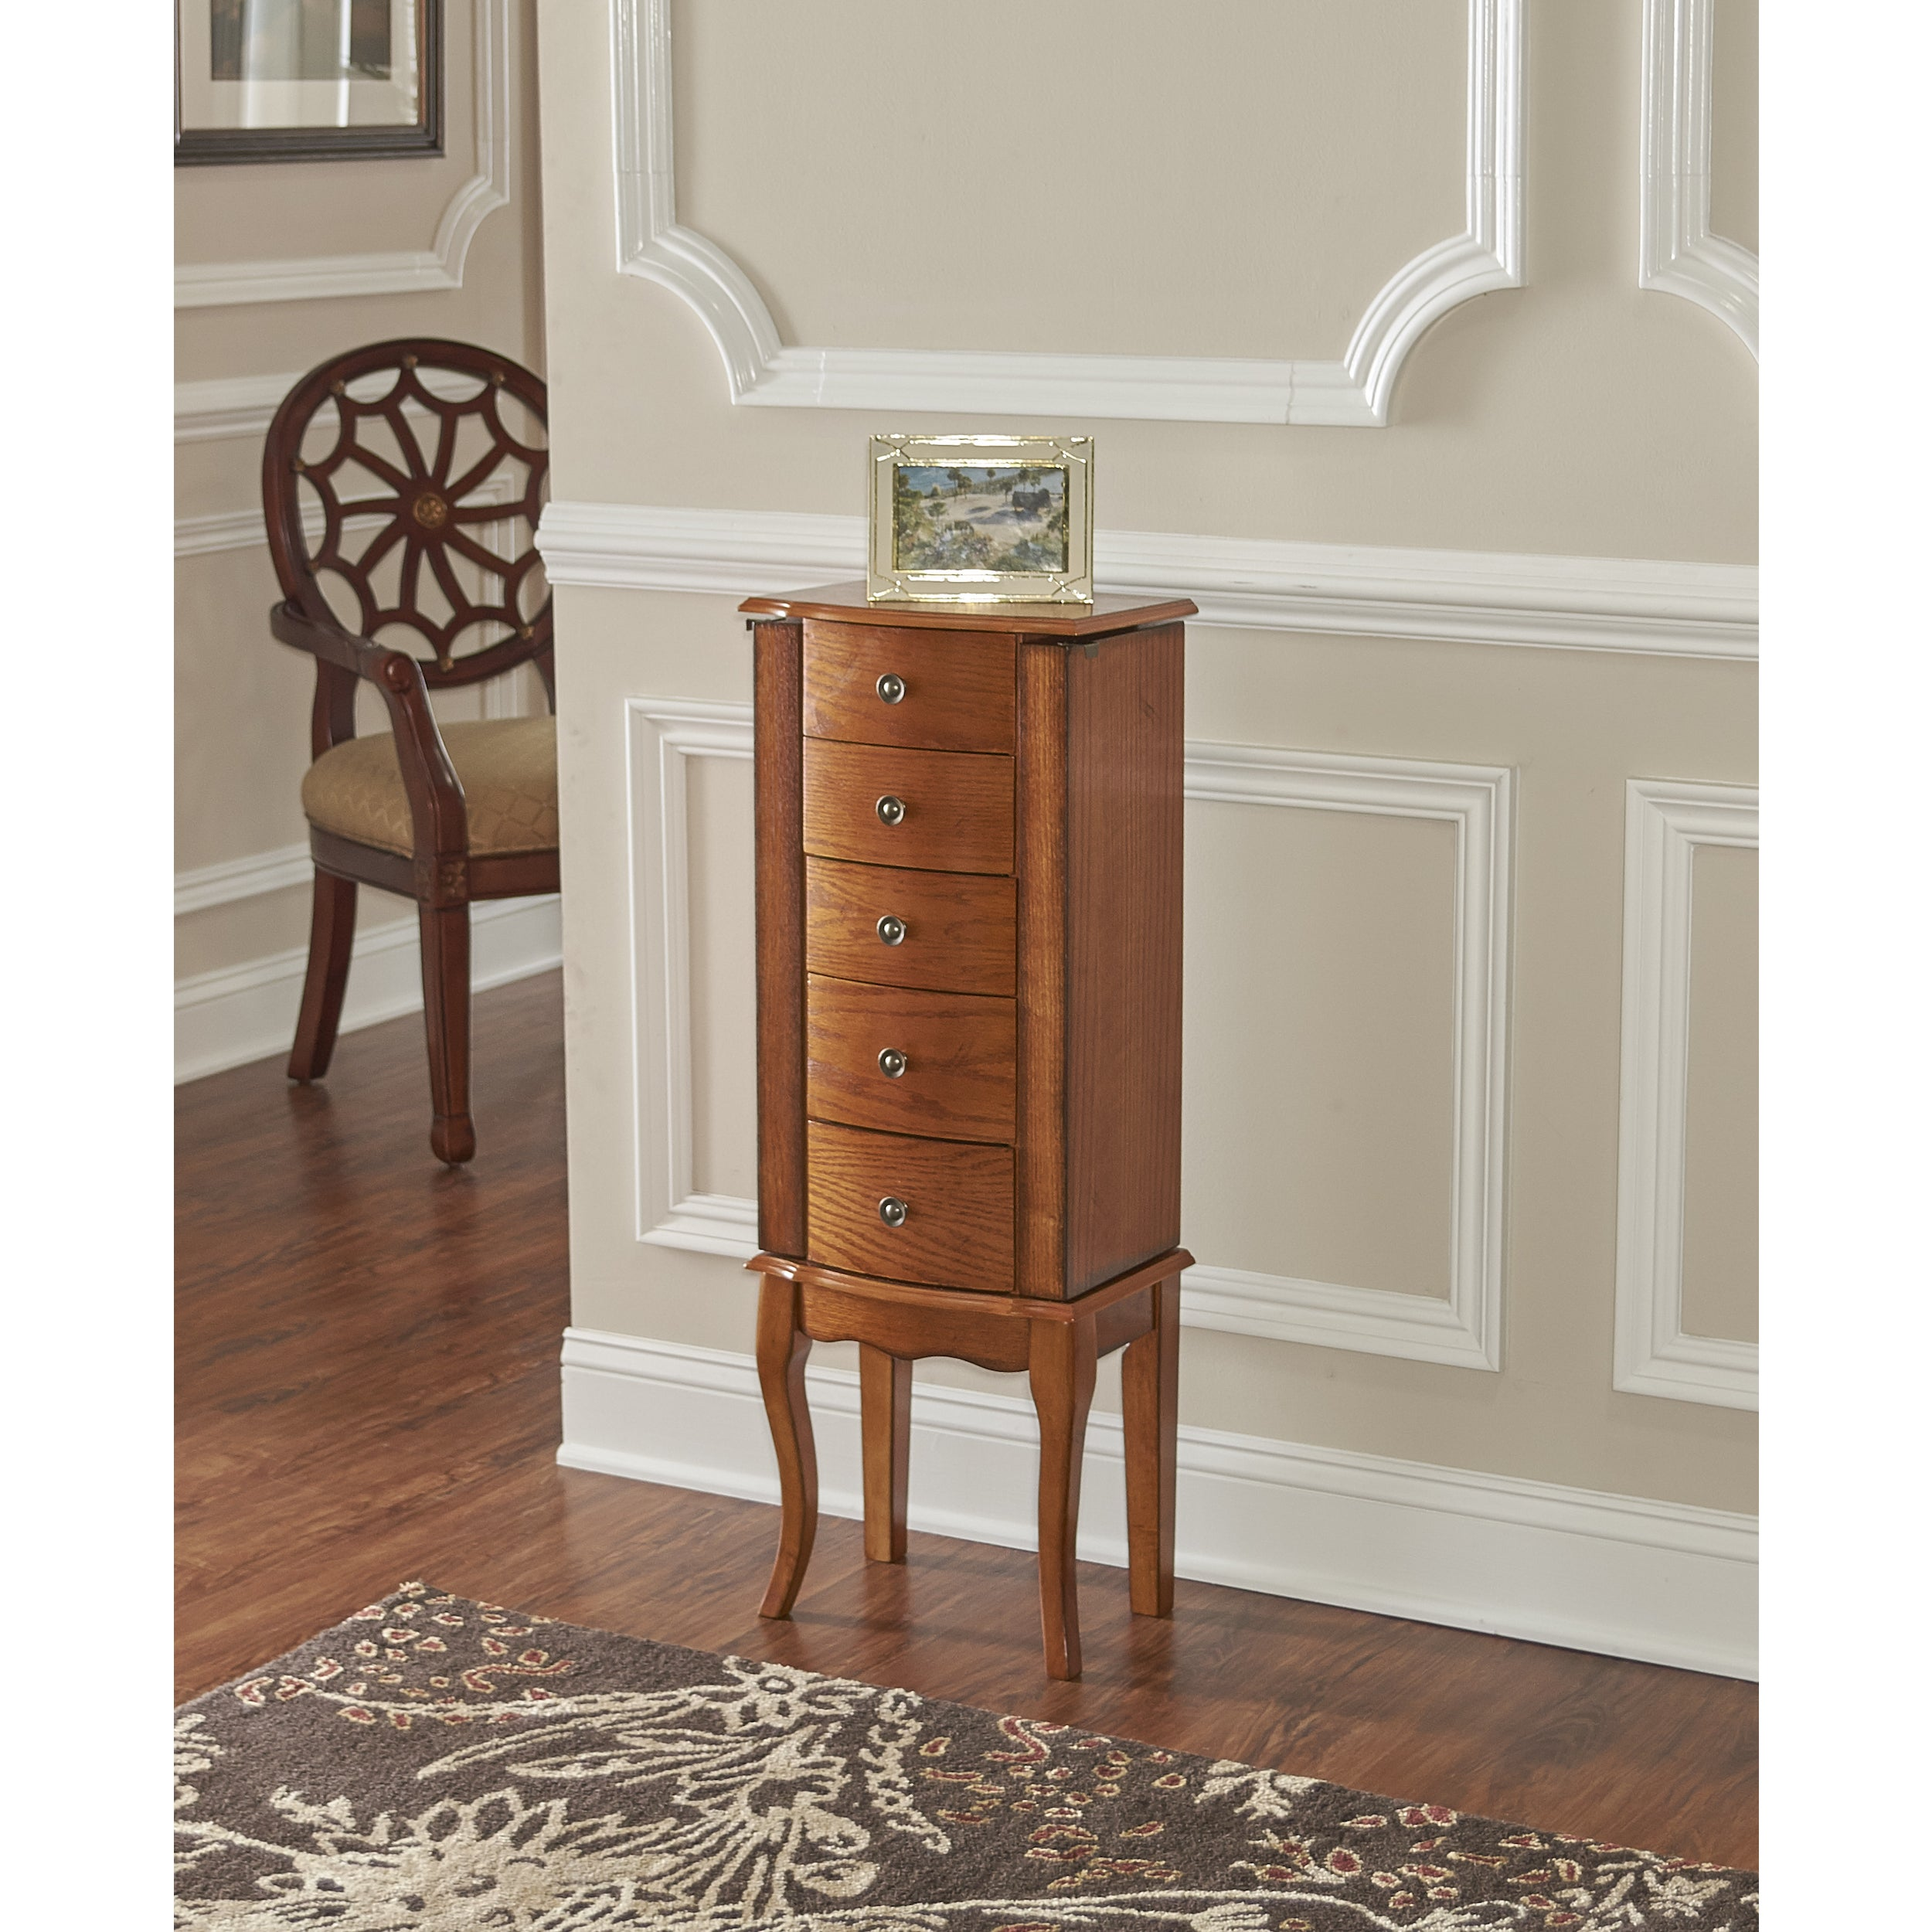 mirror hooker glamour armoire storage w melange open floor hutch accents silo iteminformation furniture jewelry